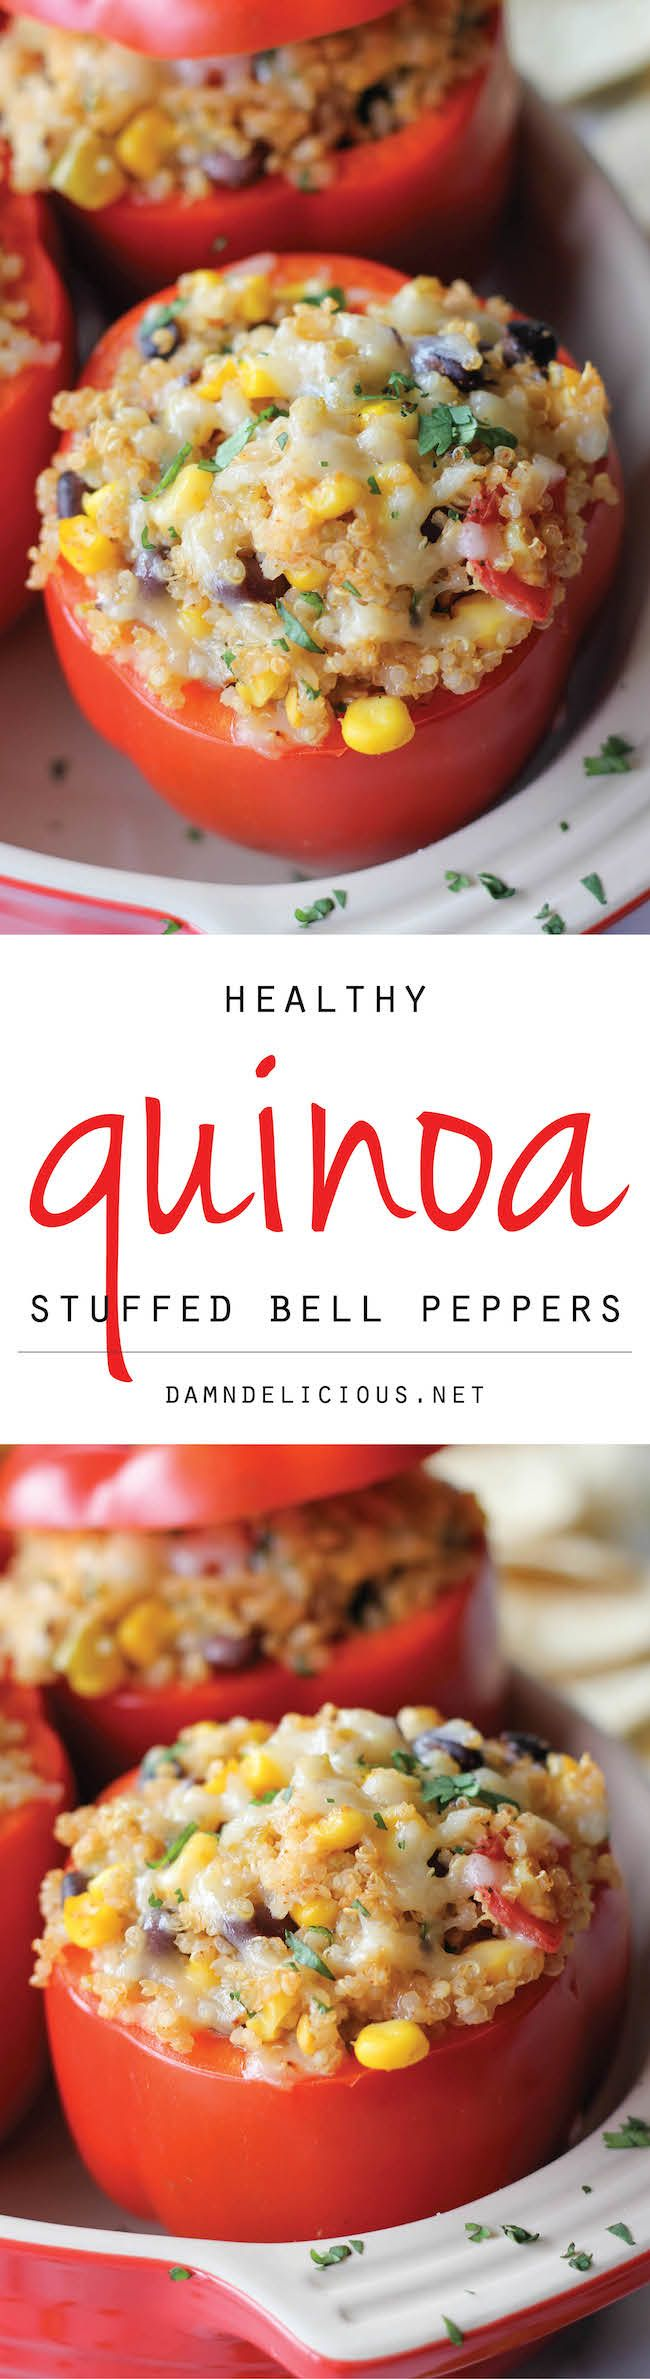 Quinoa Stuffed Bell Peppers. Use fresh onions -no powder No cilantro Parmesan -no jack No tomatos Sriracha - just a little